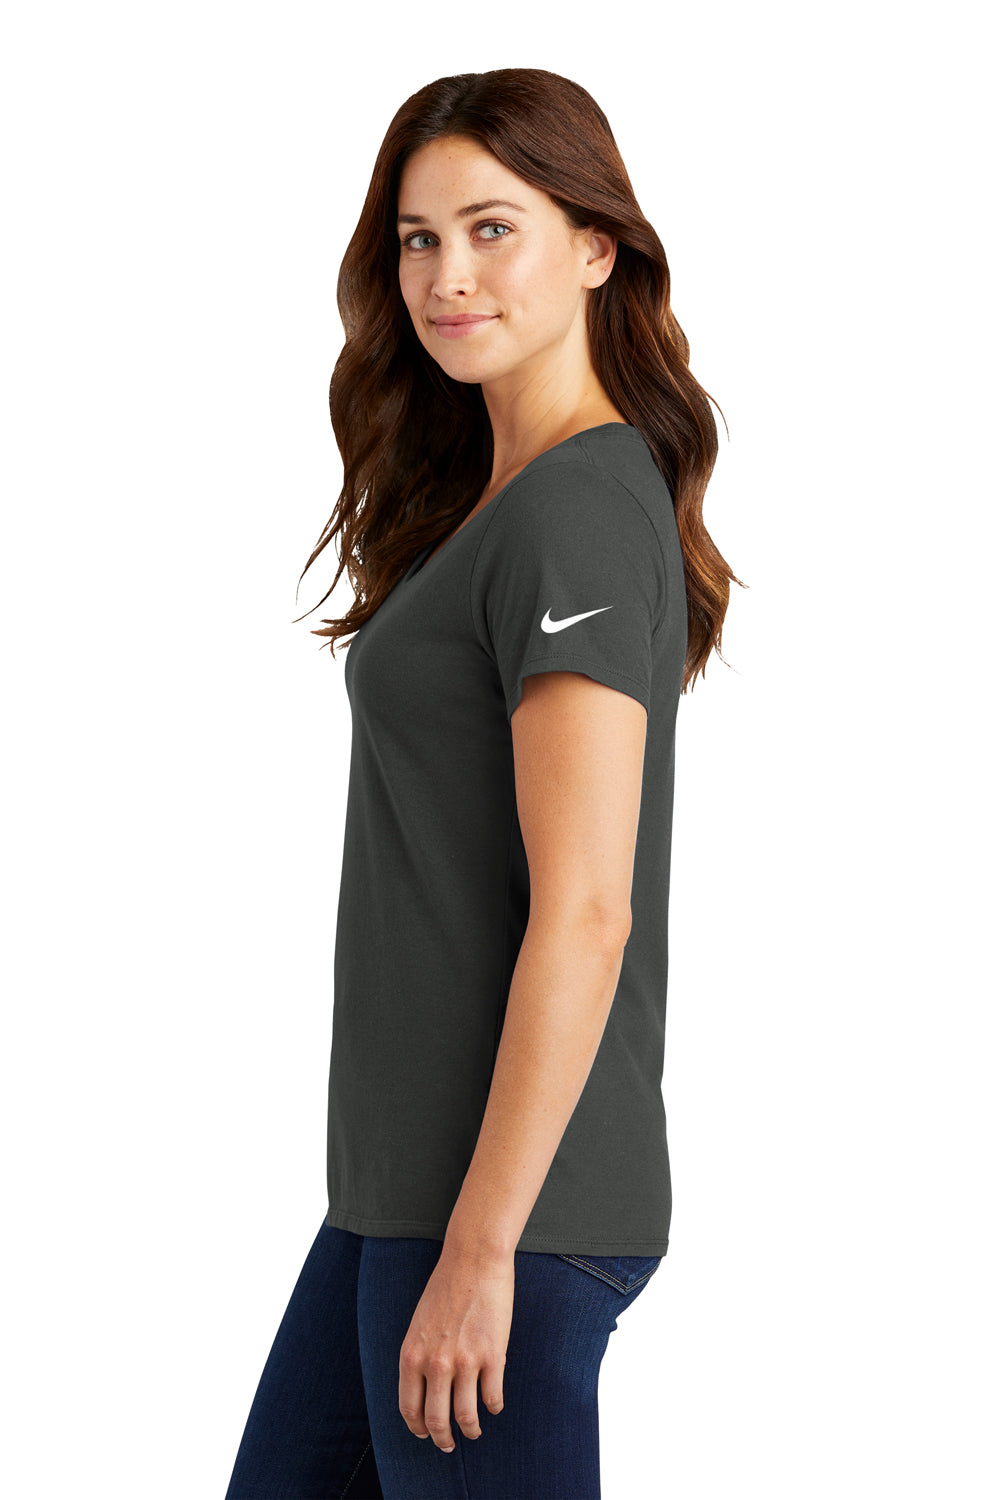 Nike NKBQ5234 Womens Dri-Fit Moisture Wicking Short Sleeve Scoop Neck T-Shirt Anthracite Grey Side